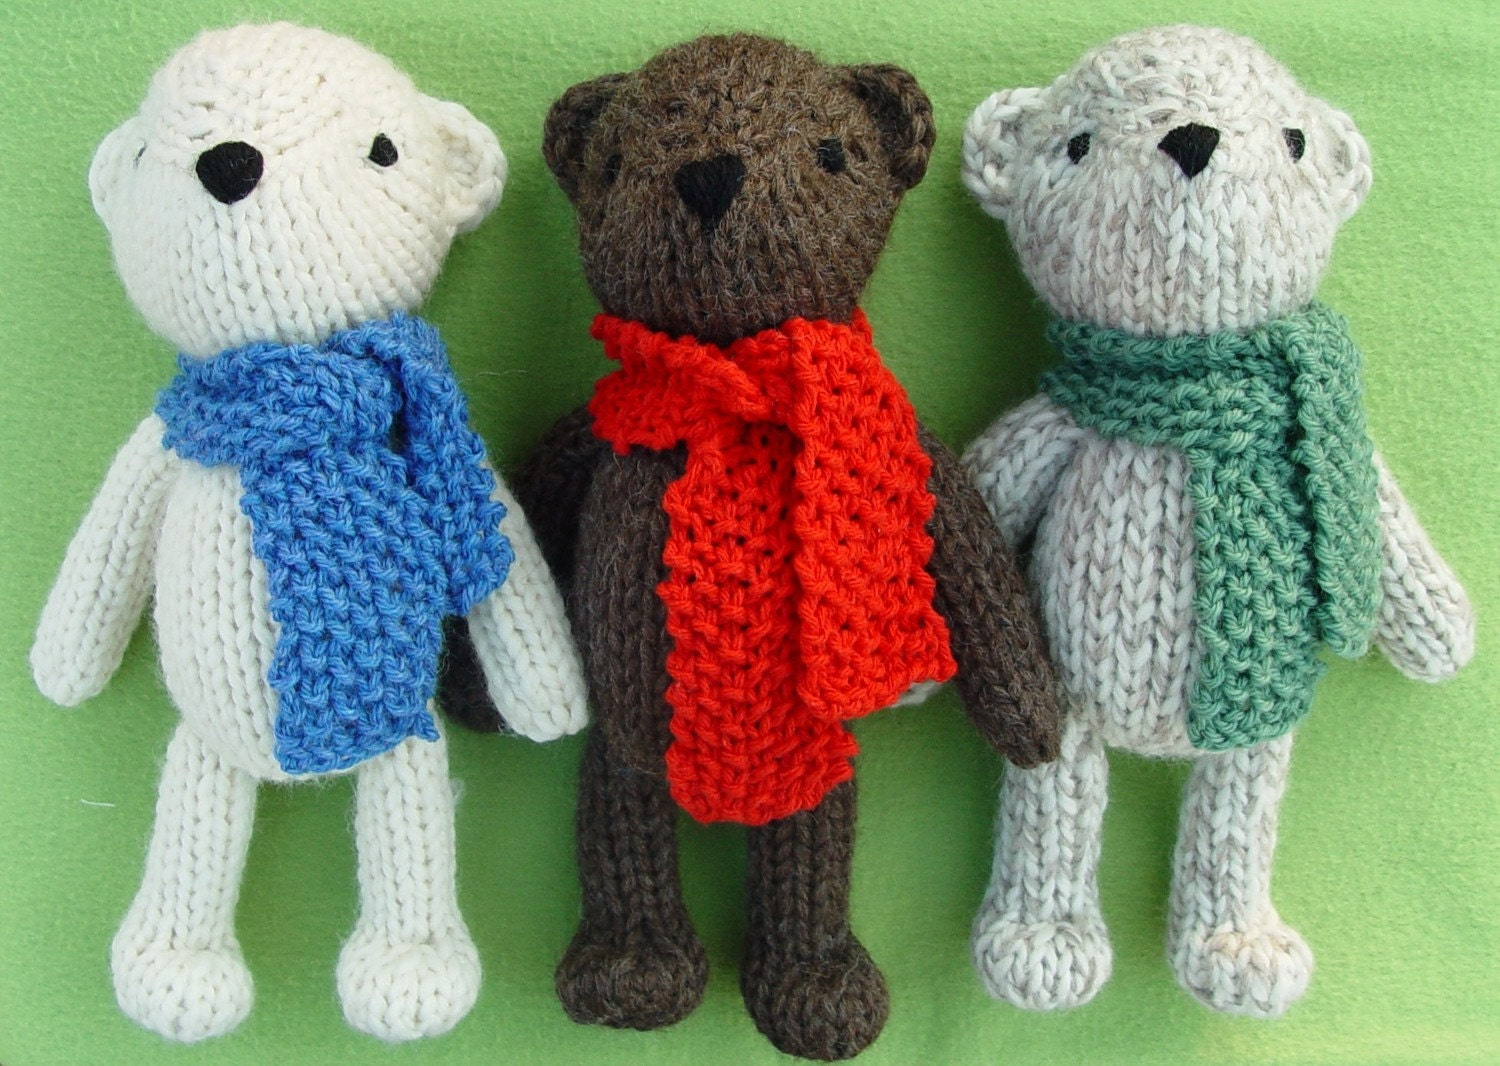 Jumper Knitting Pattern For A Teddy Bear : Teddy bear patterns - Lookup BeforeBuying